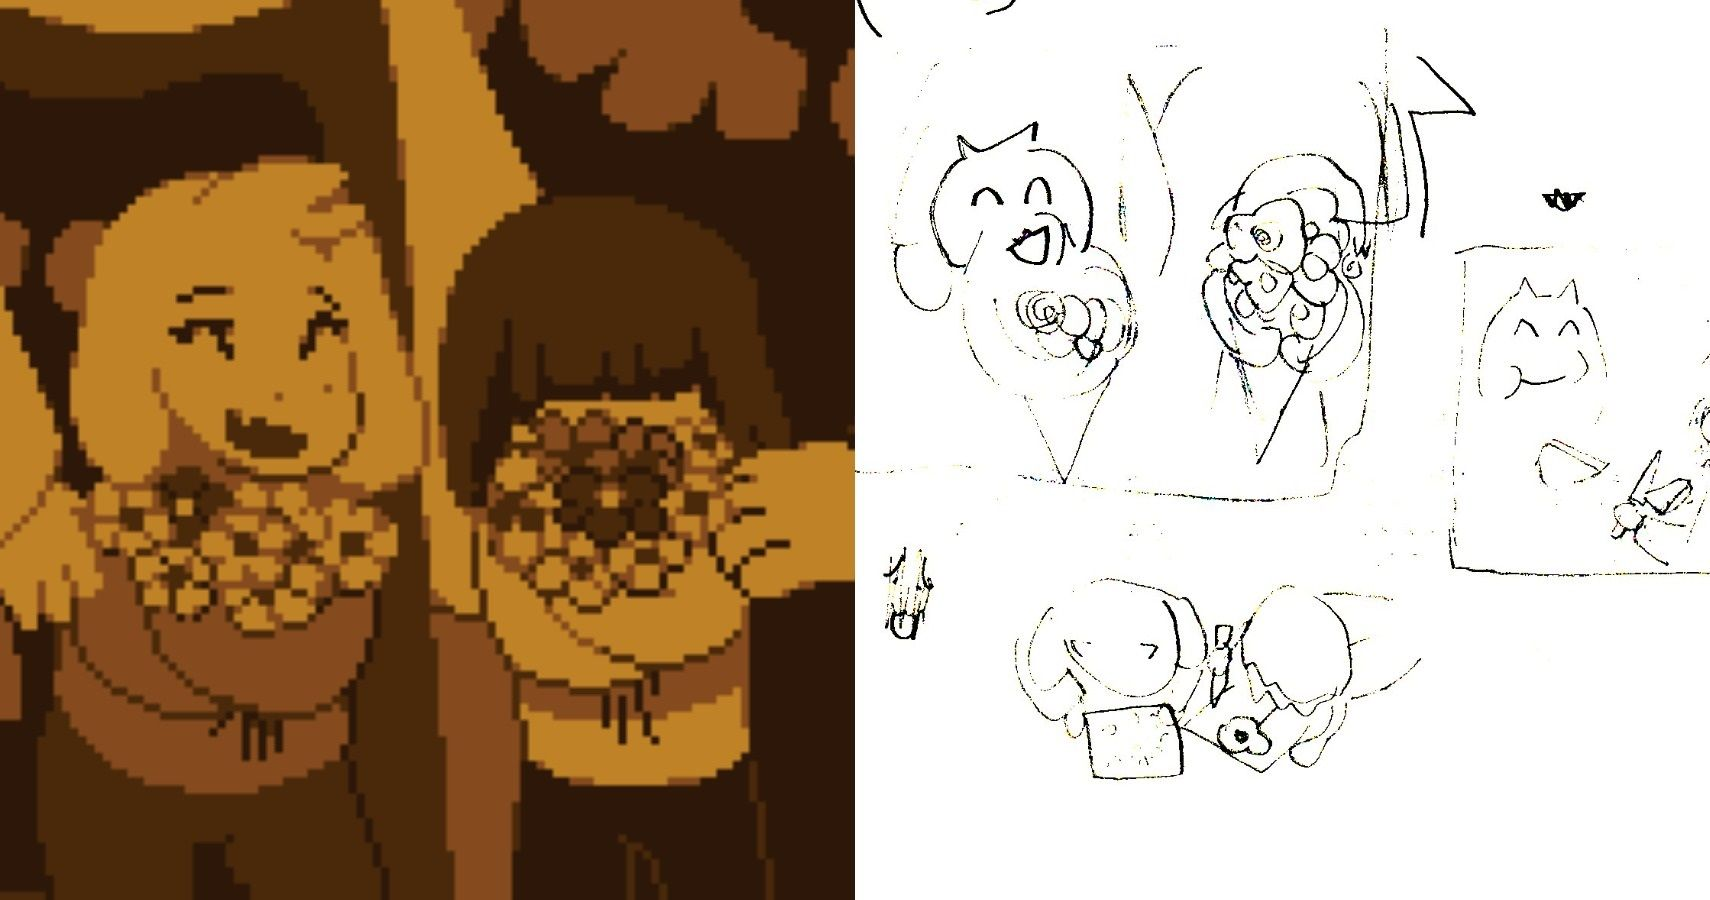 Toby Fox Reveals Concept Art Of Cut Scenes From Undertale